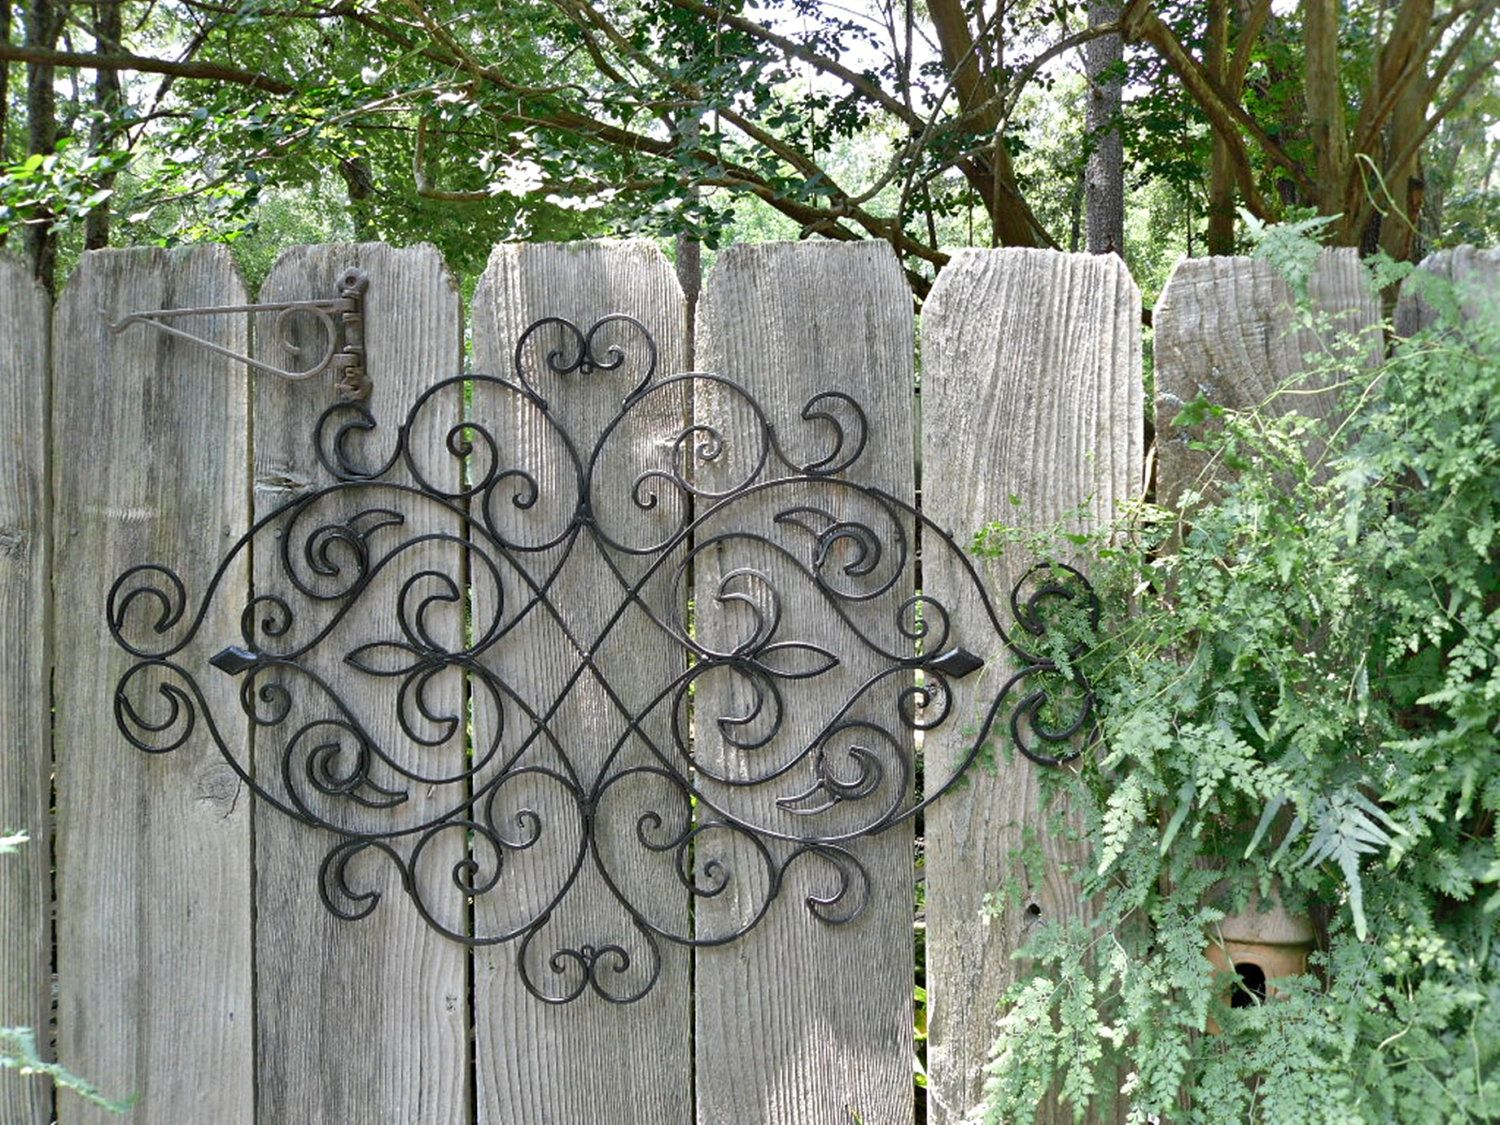 Wrought Iron Outdoor Wall Decor Google Image Result For Httpimg3.etsystatic00005989046